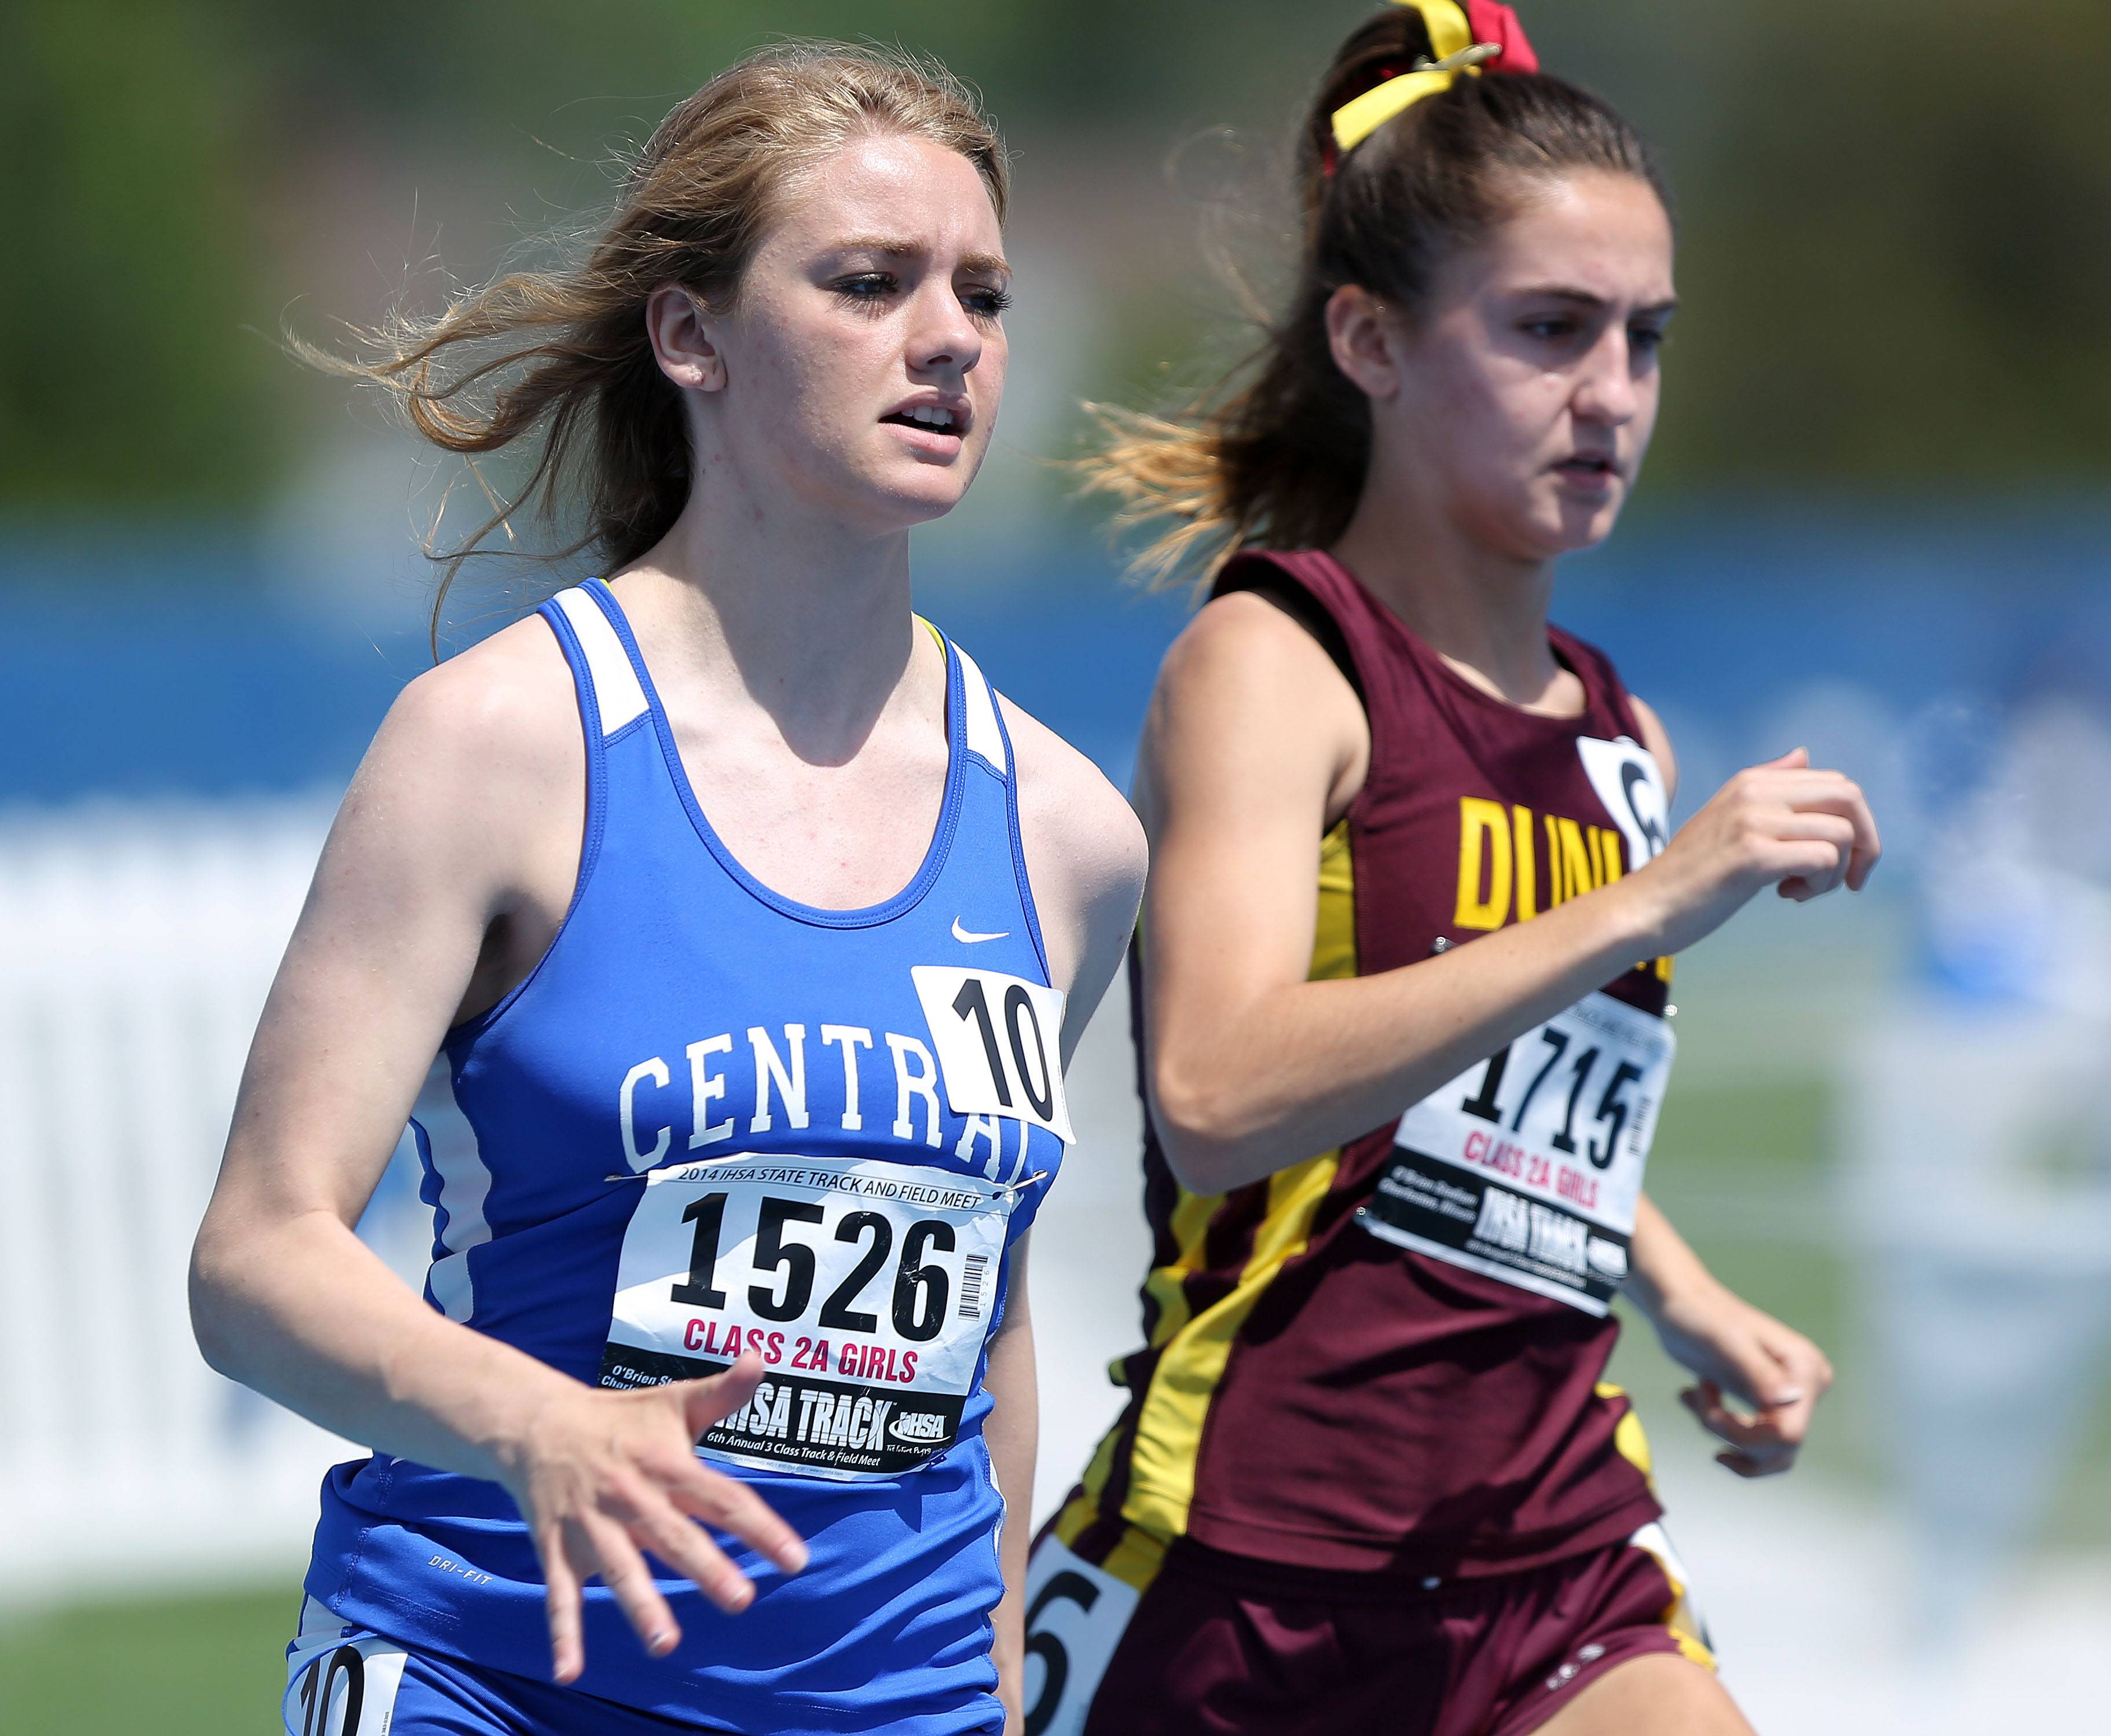 Burlington Central's Katie Bush runs in the 1600-meter run during the prelims of the girls track and field state meet at Eastern Illinois University in Charleston Friday.